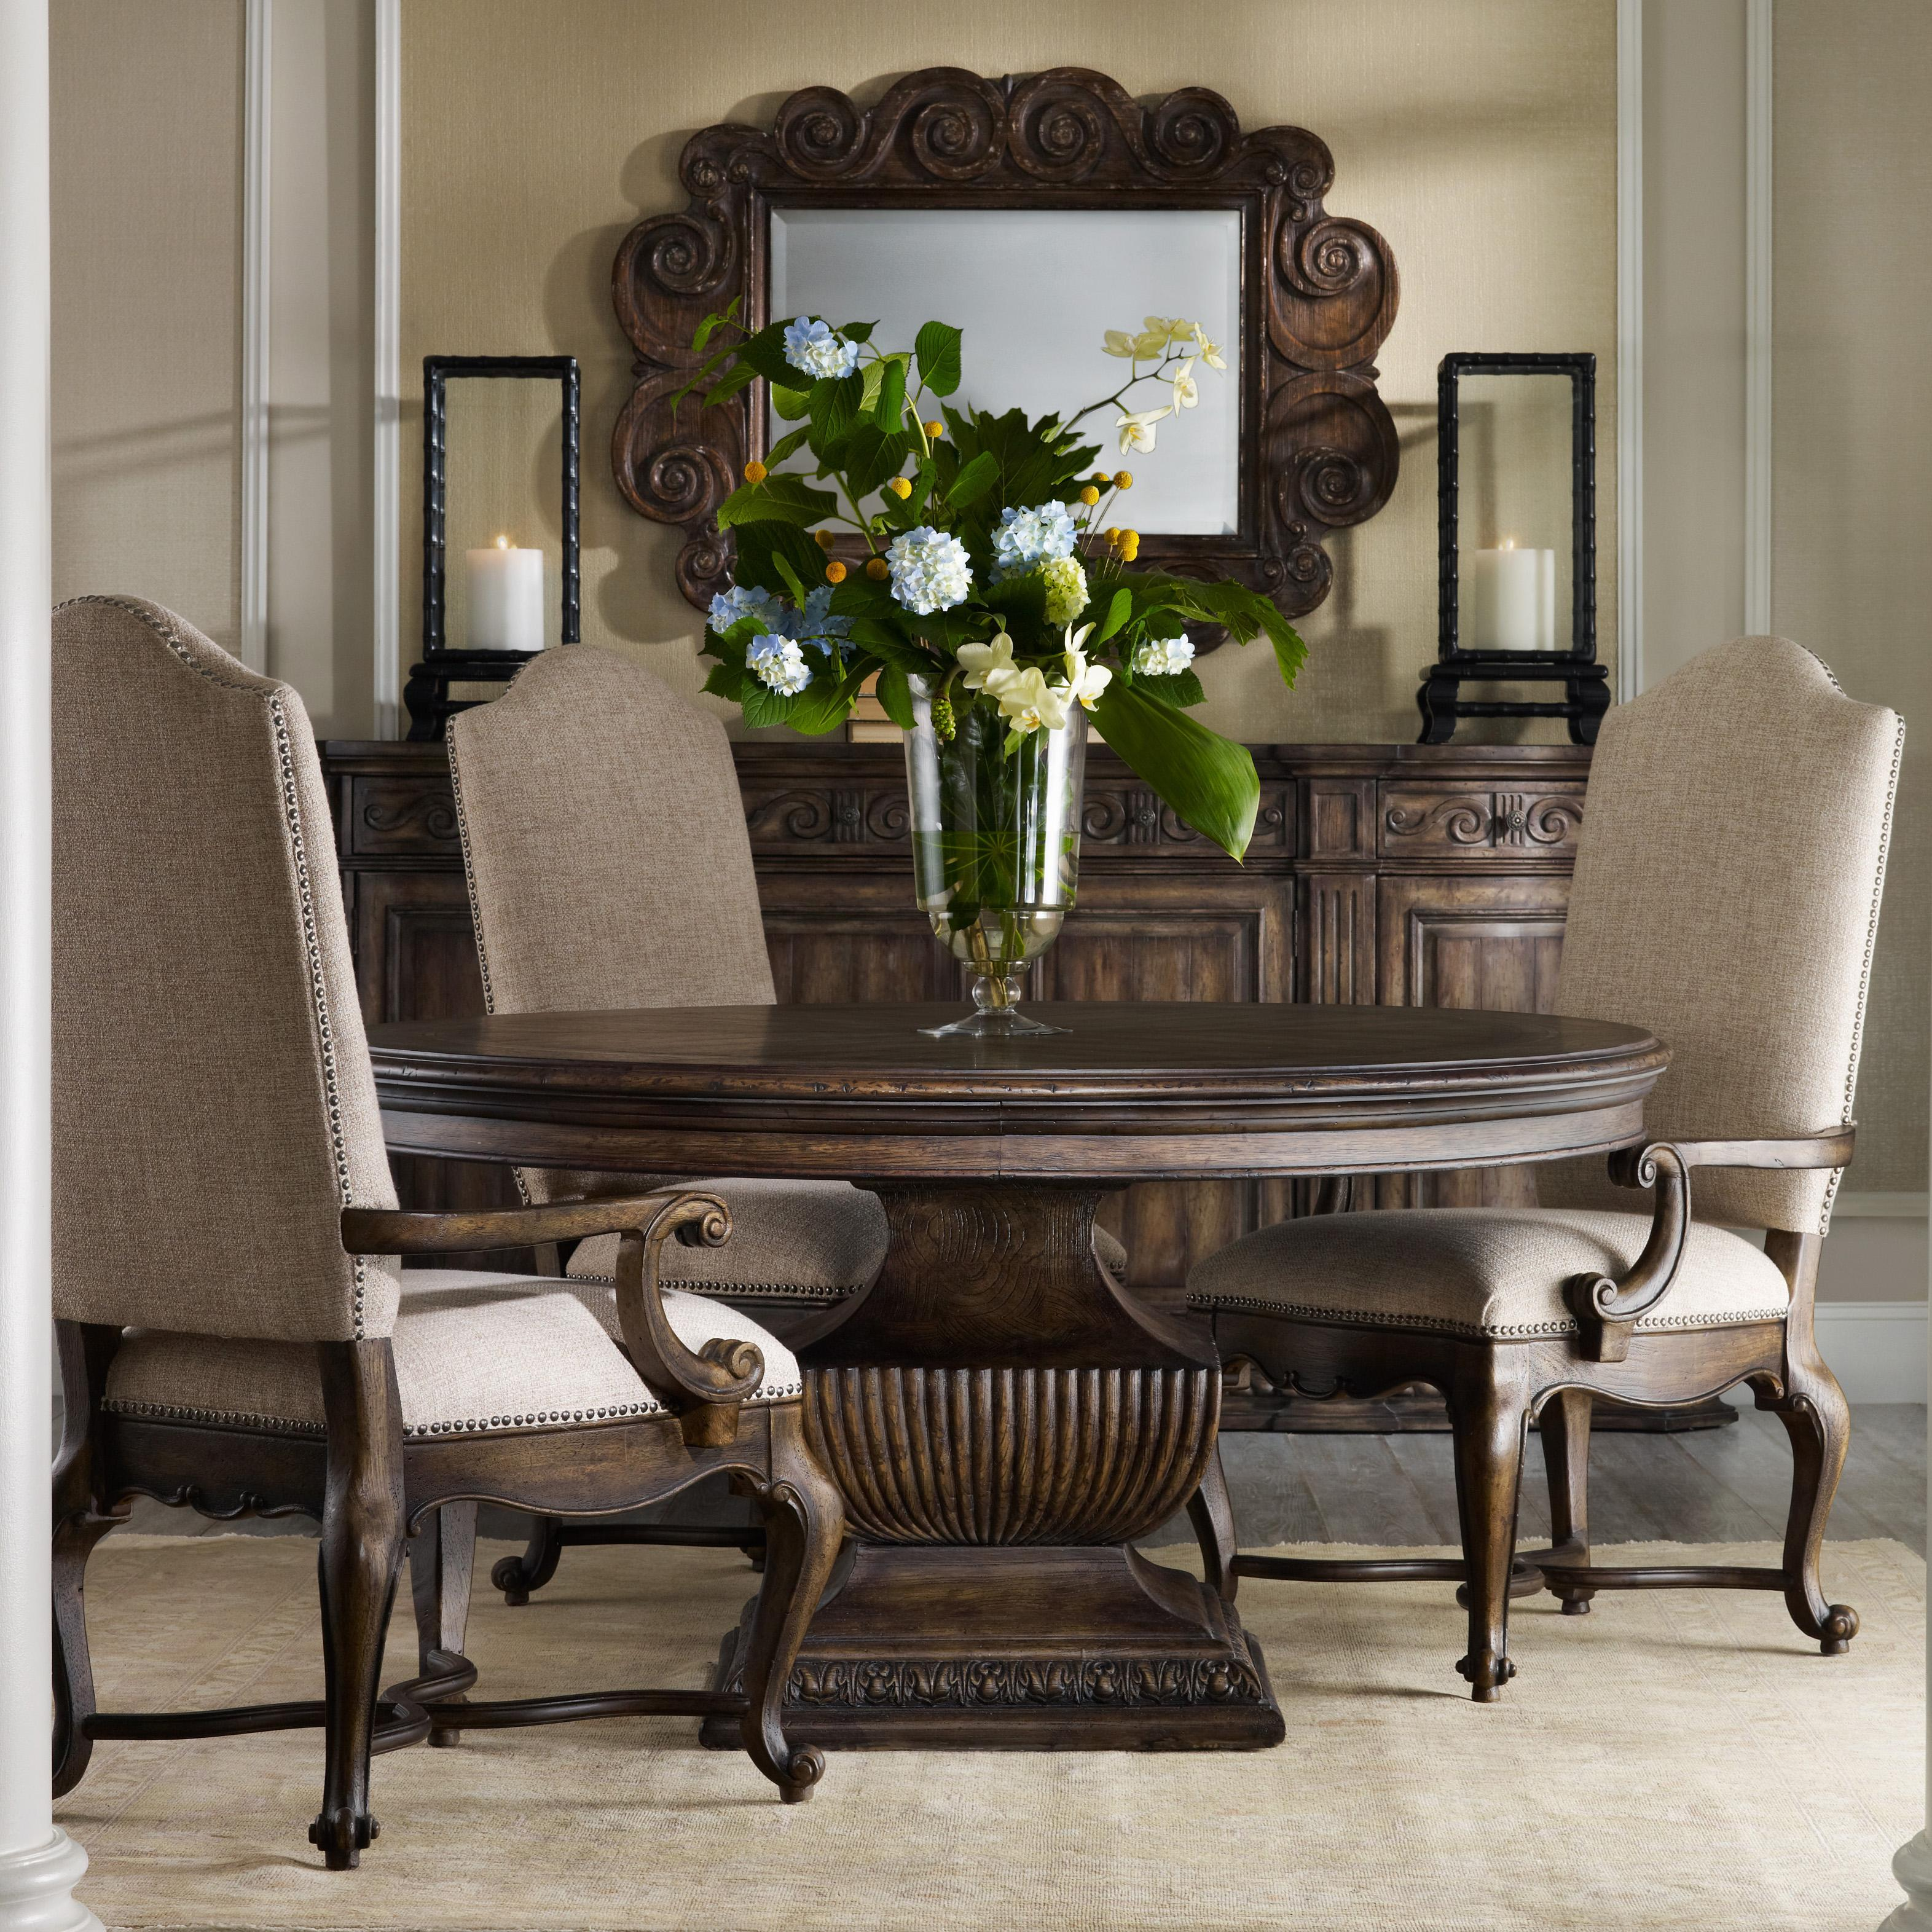 """Rhapsody 60"""" Round Table and Upholstered Chair Set by Hooker Furniture at Belfort Furniture"""